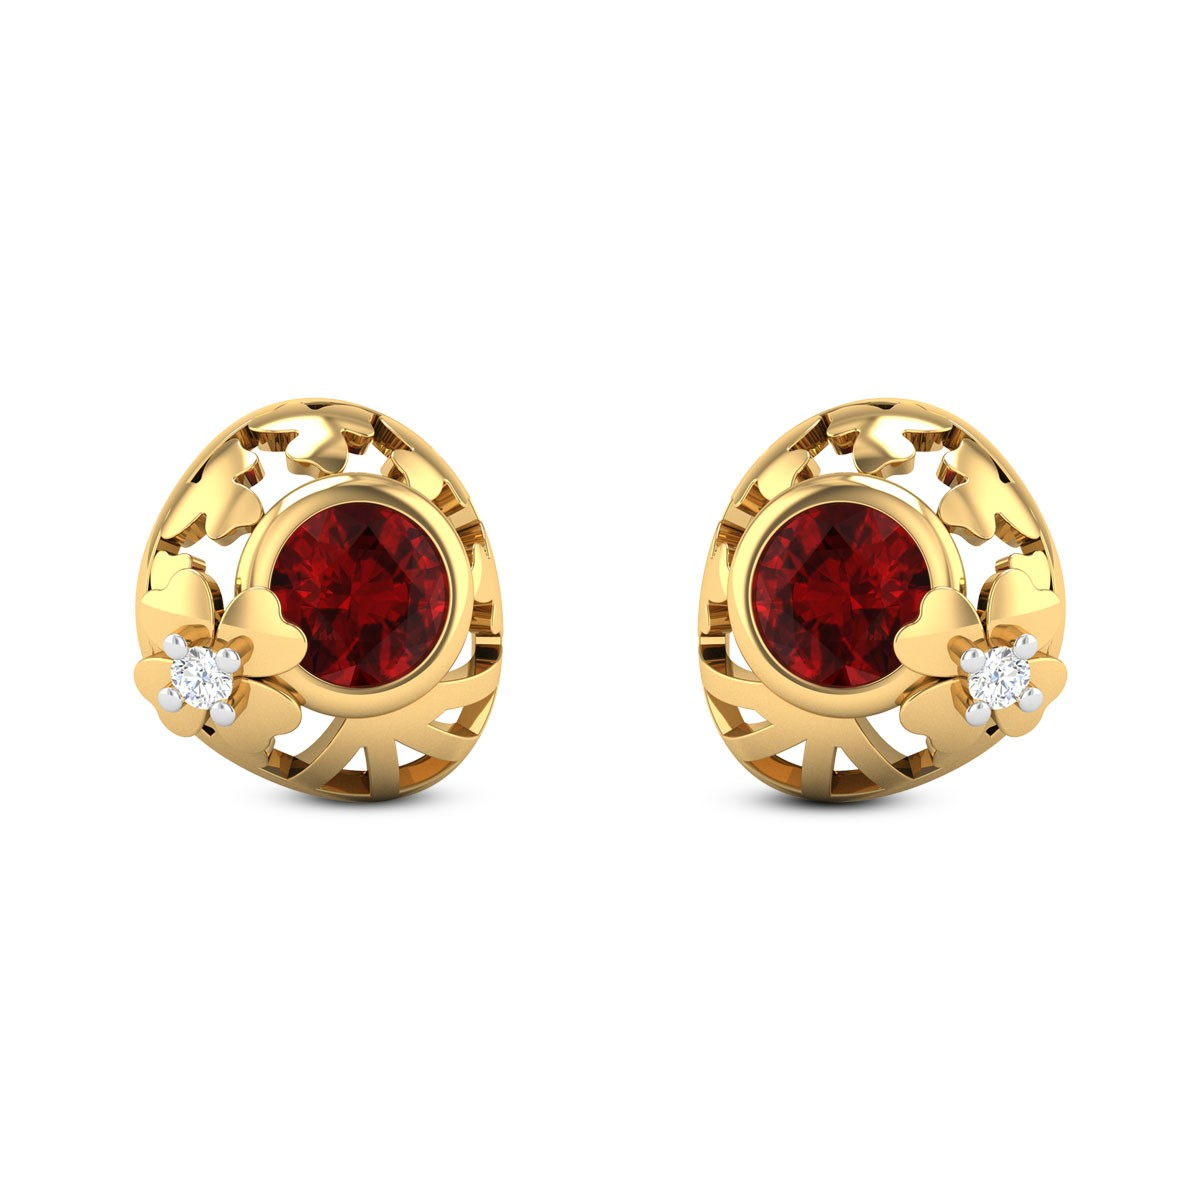 Urania Stud Earrings